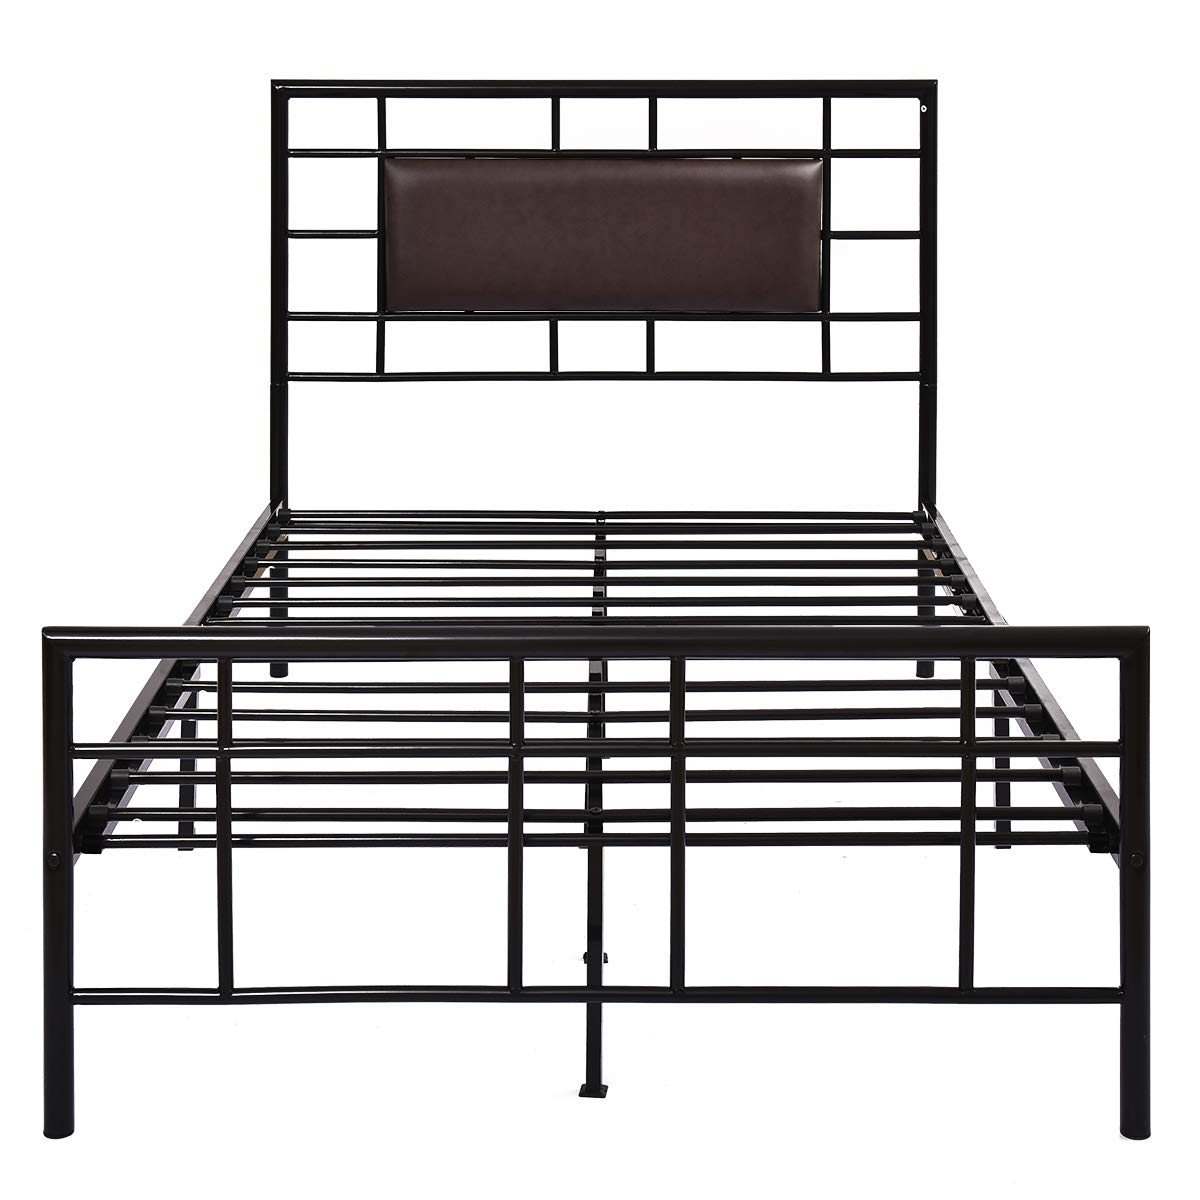 Bed Fame Queen Size Mattress Foundation Headboard and Footboard Heavy Duty Metal Platform Bed Steel Slabs Bed Frames for Living Room No Box Spring with Black PU Headboard